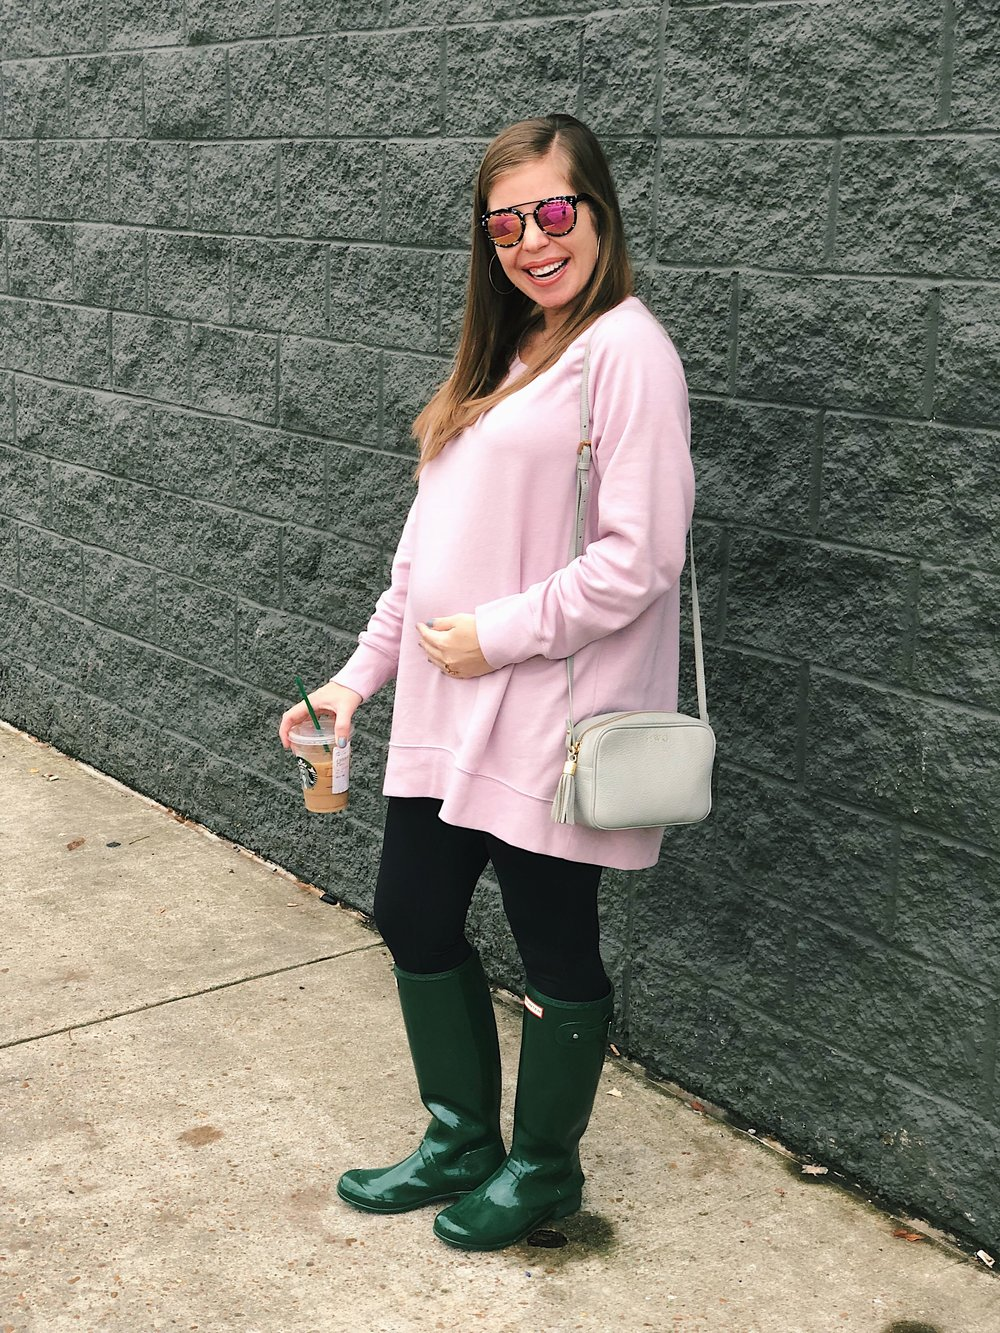 Outfit Details:     Sweatshirt     |     Leggings     |     Boots     |     Crossbody Bag     |     Sunglasses